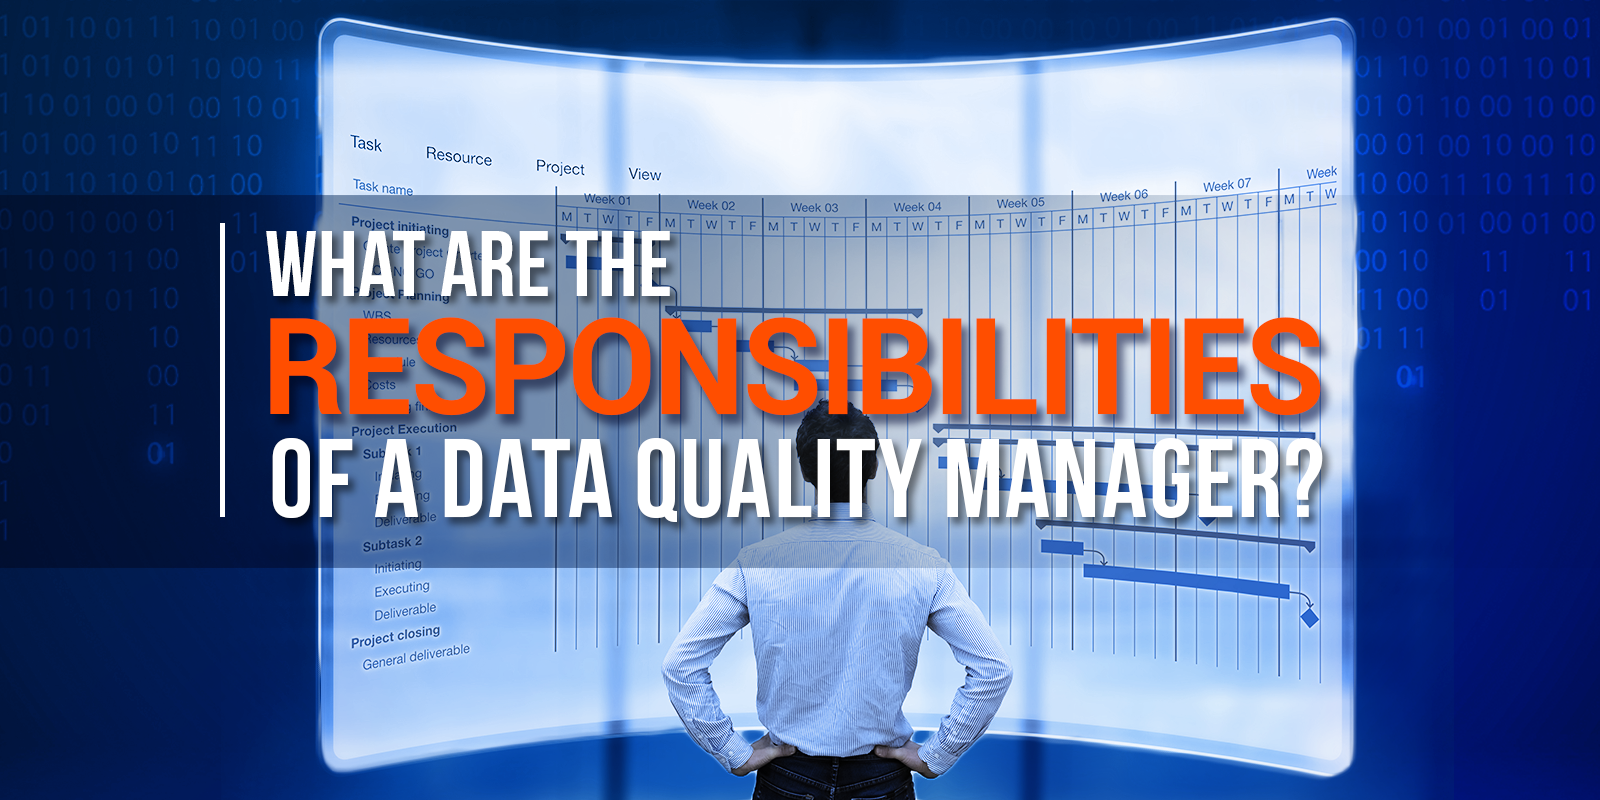 What Are The Responsibilities Of A Data Quality Manager?